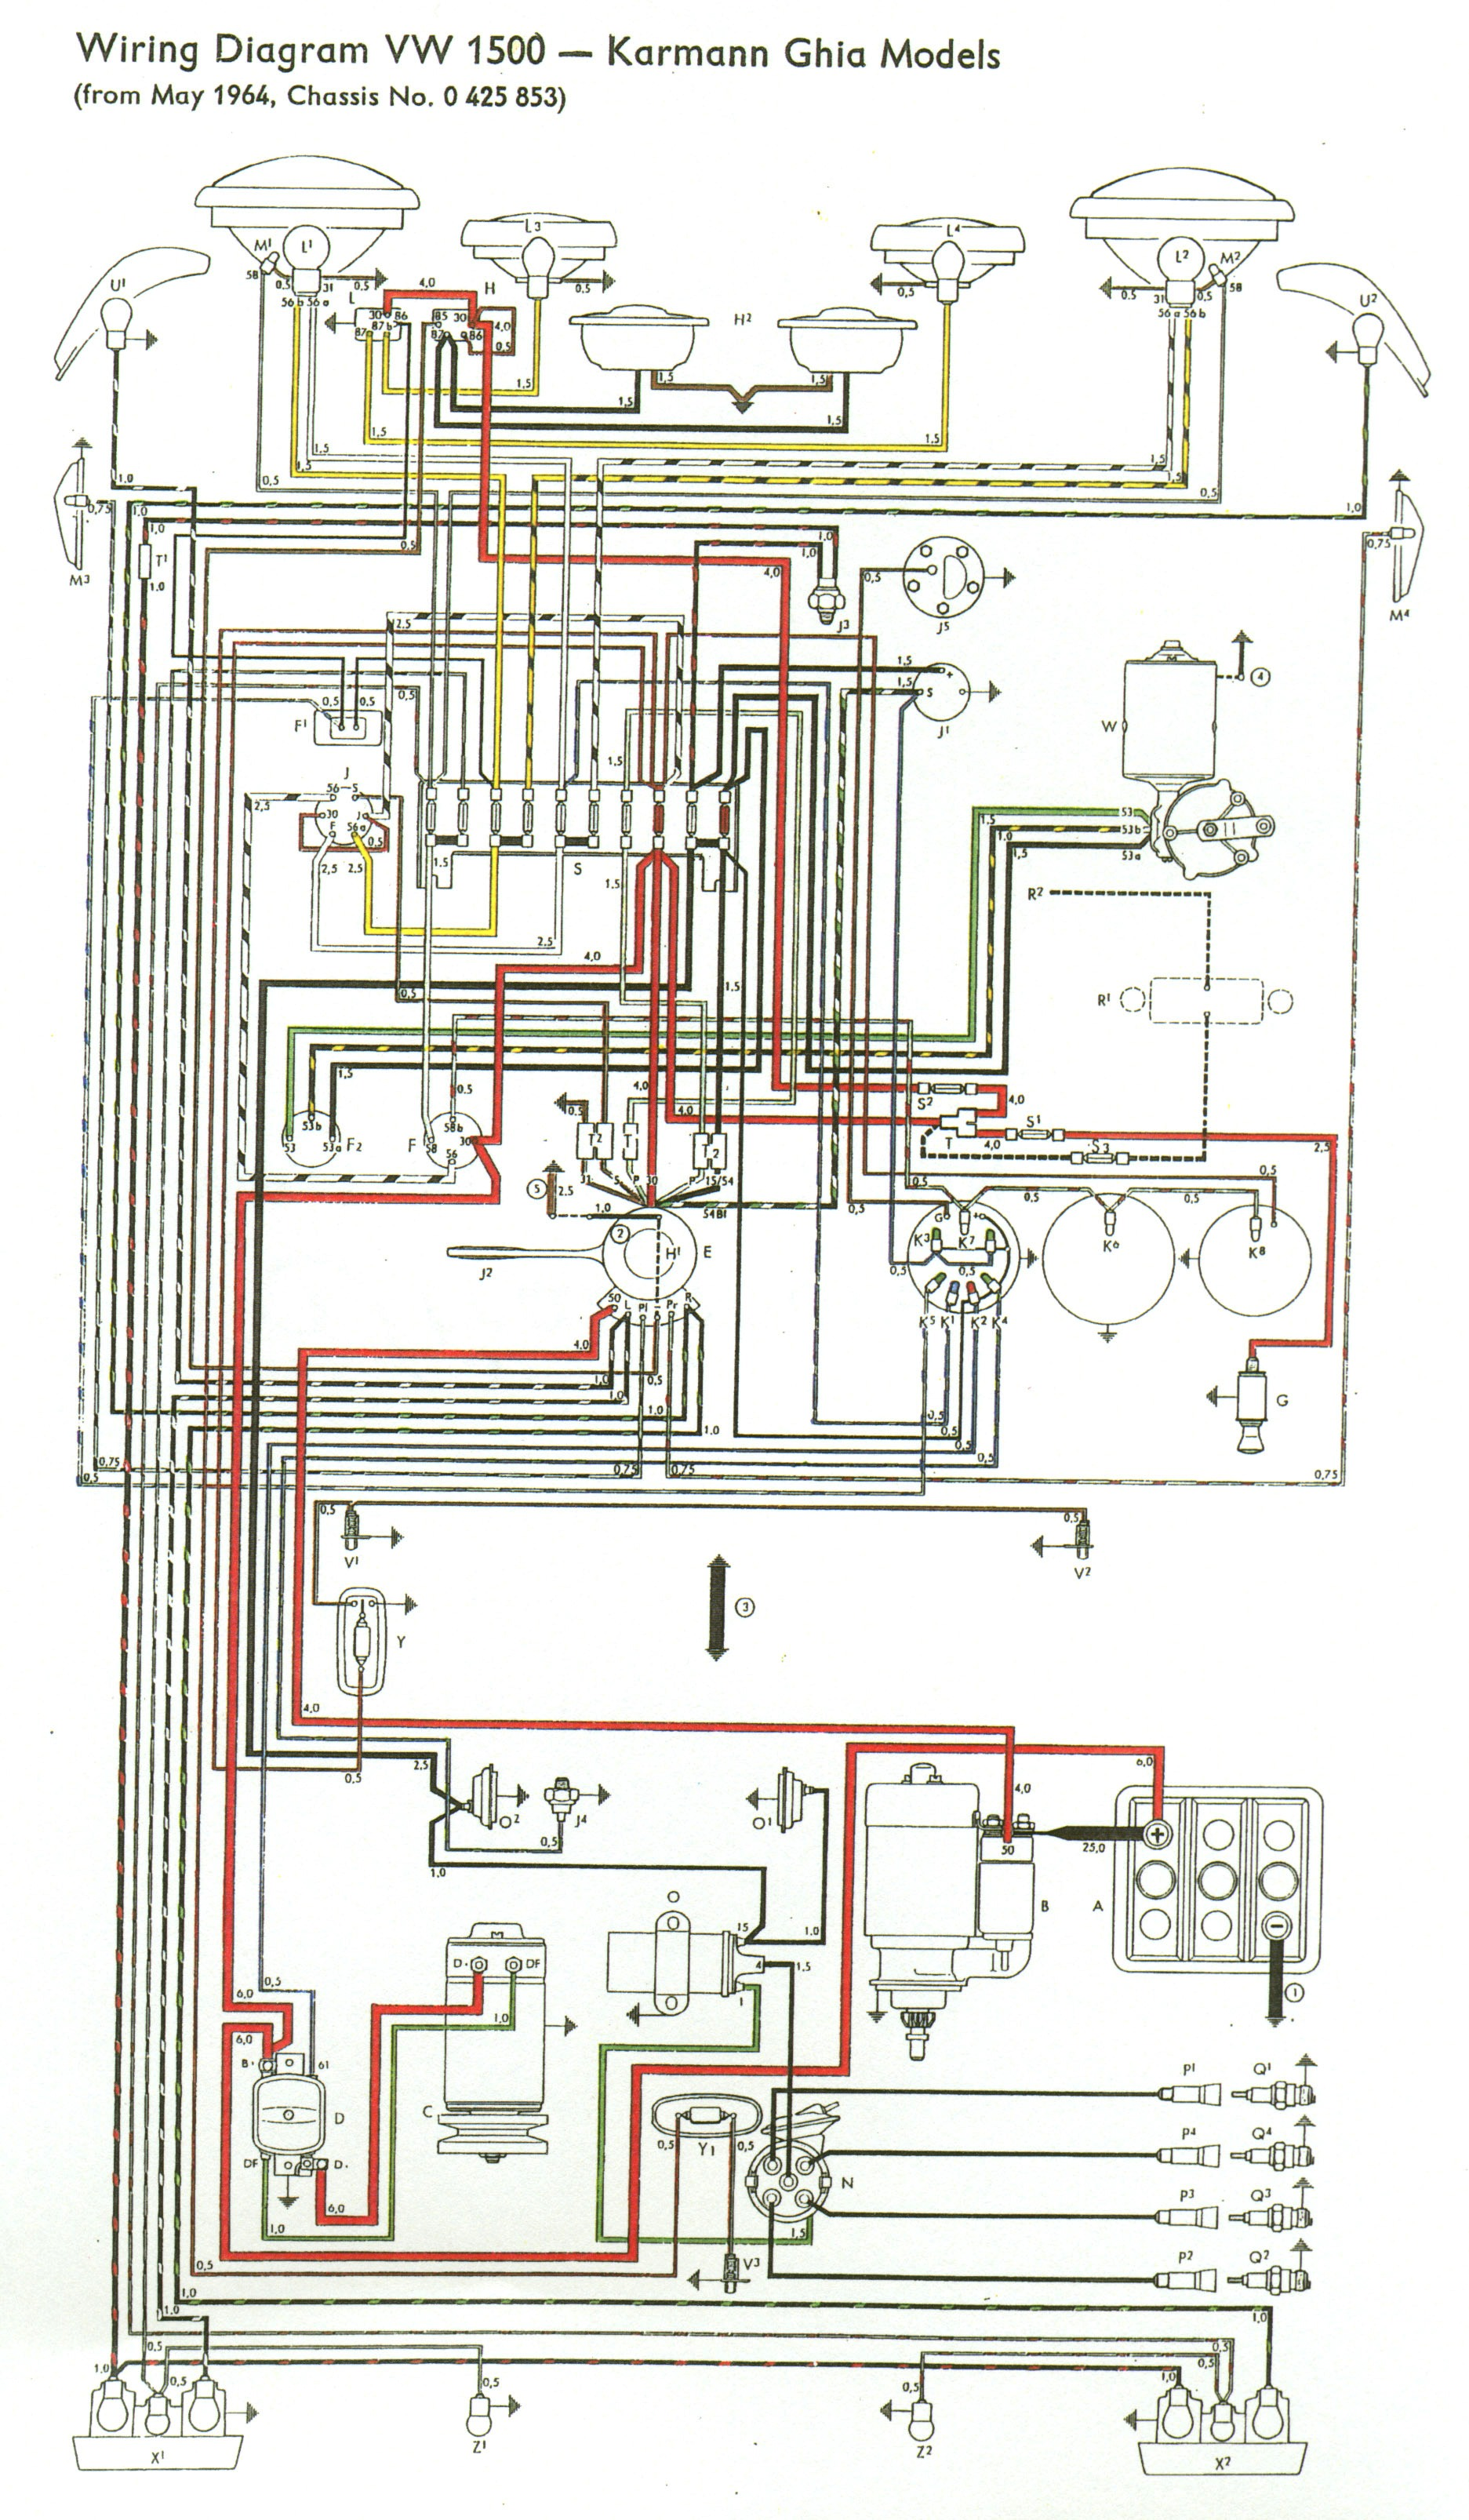 1965 Vw Wiring Diagram Will Be A Thing 1960 Triumph 22 Images Bug Volkswagen